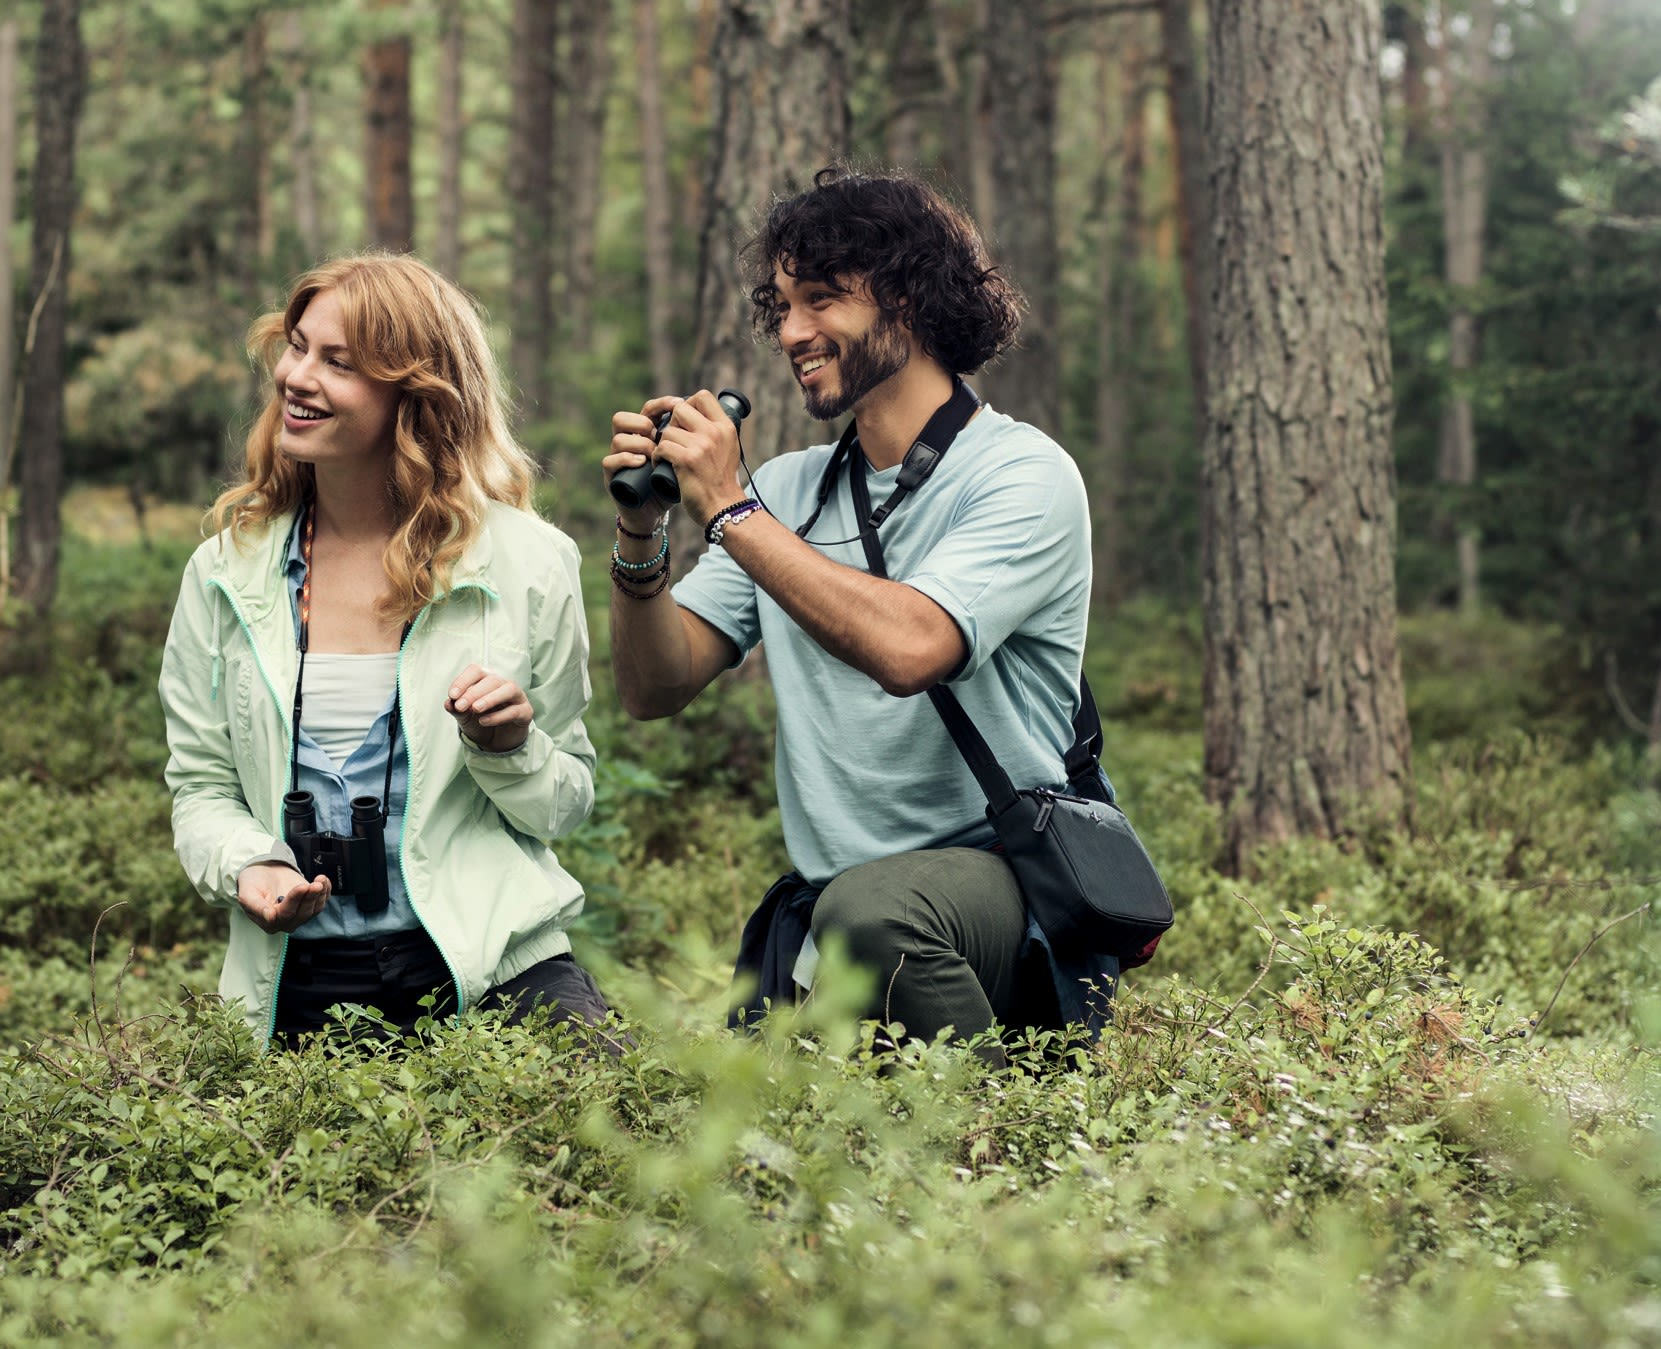 Discover more with your CL Companion binoculars!